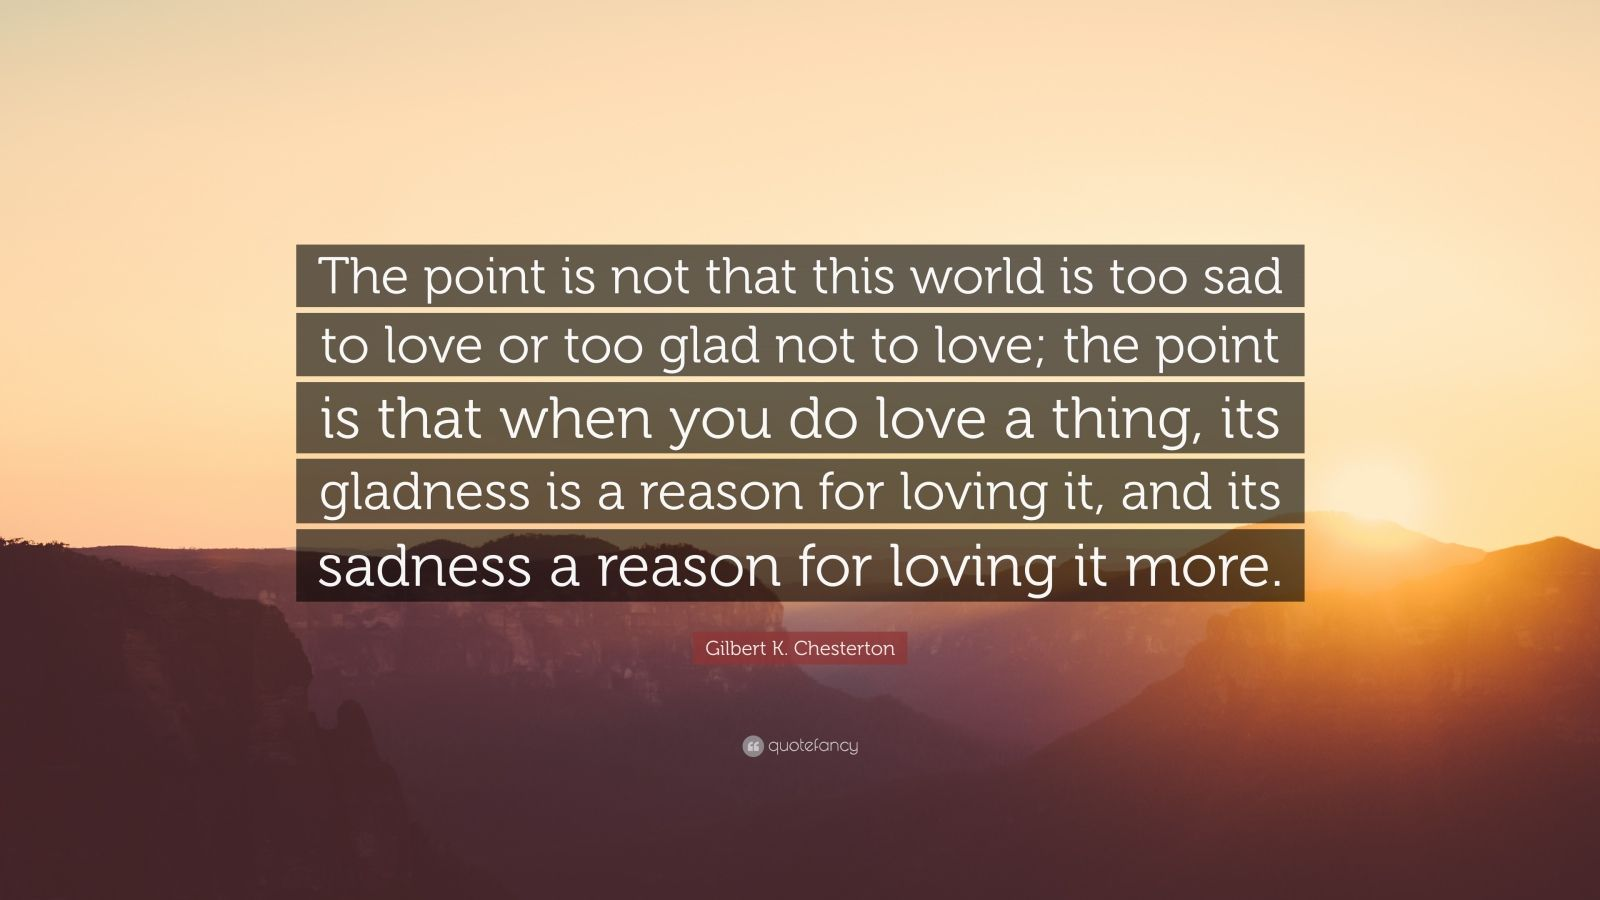 """Gilbert K. Chesterton Quote: """"The point is not that this world is too sad to love or too glad not to love; the point is that when you do love a thing, its gladness is a reason for loving it, and its sadness a reason for loving it more."""""""